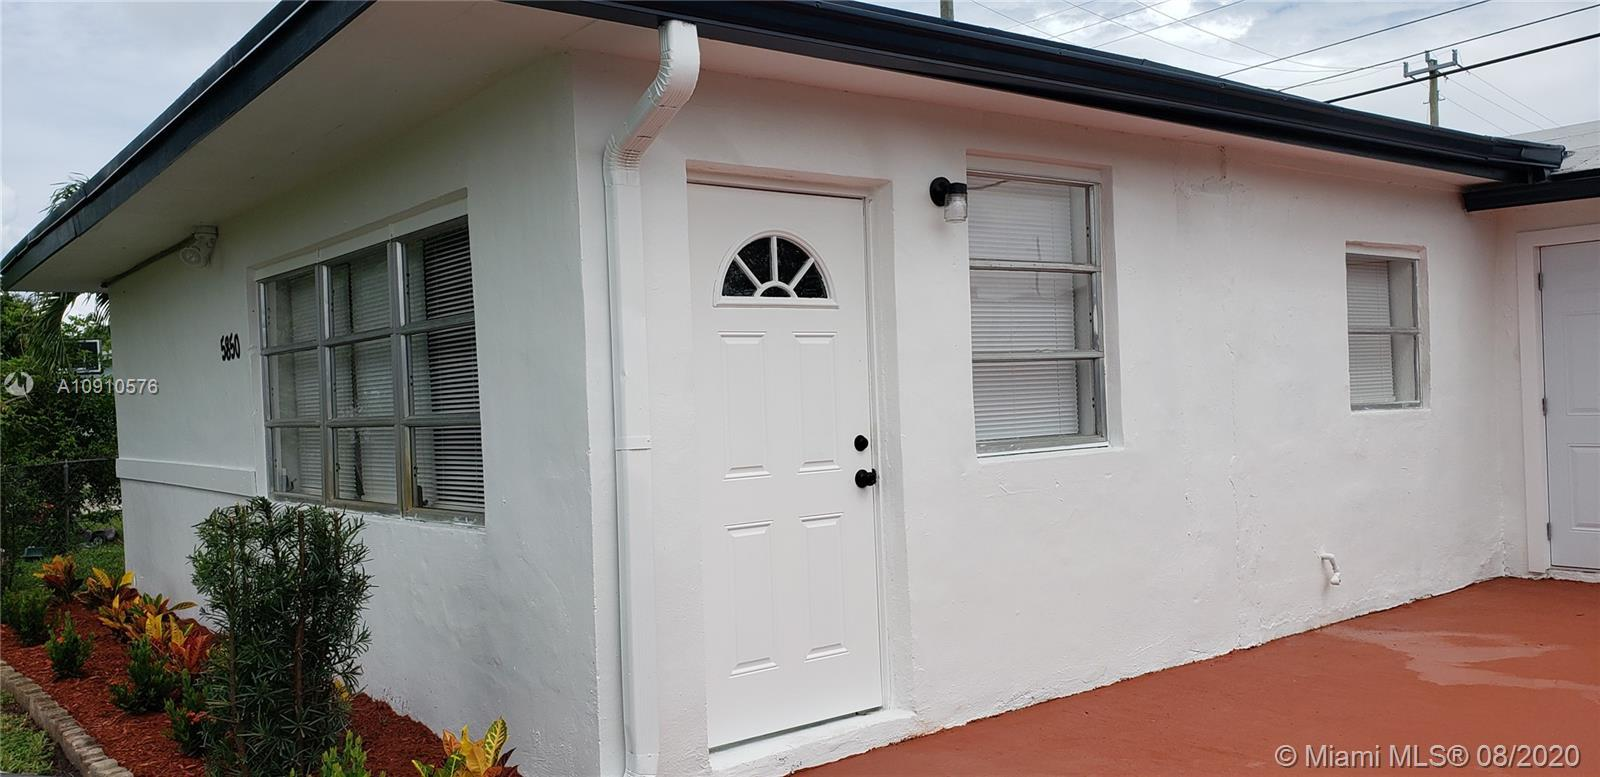 FULLY RENOVATED PROPERTY. FEATURES NEW PERMITTED ROOF, NEW ELECTRICITY, NEW PLUMBING, 3 BEDROOMS AND